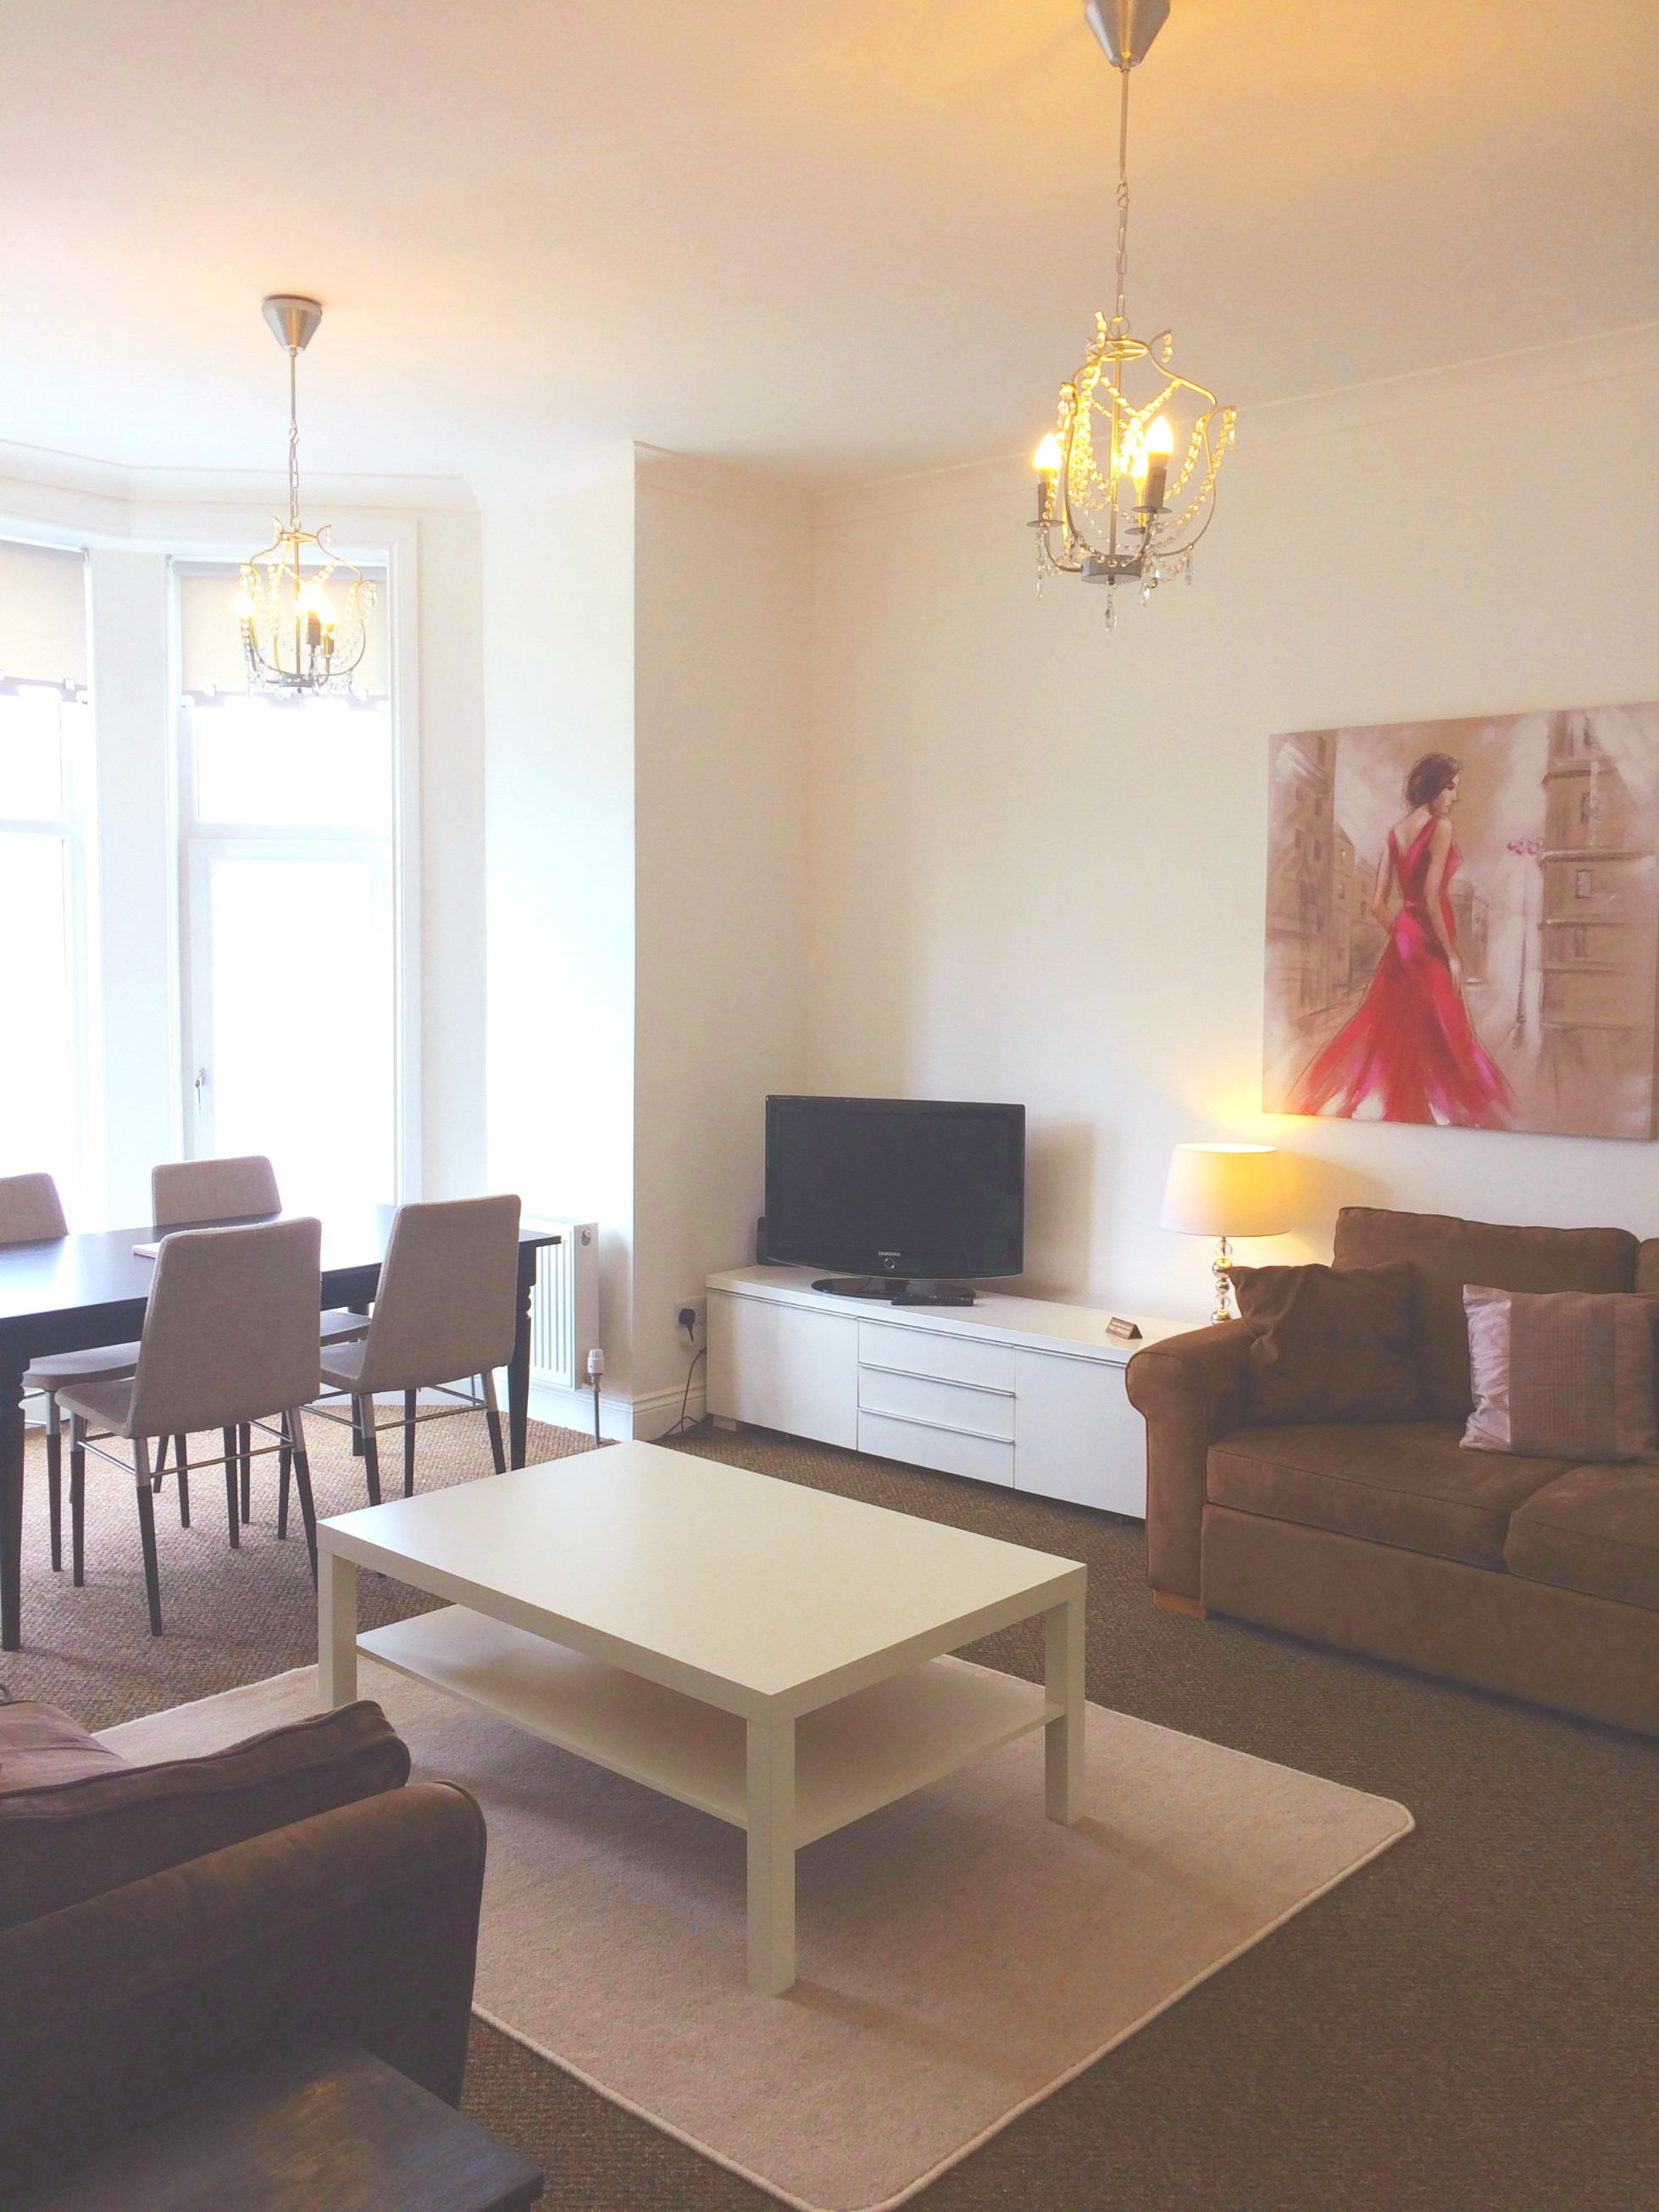 Battery Place Upstairs – Free WiFi : Jacquelines Property Services